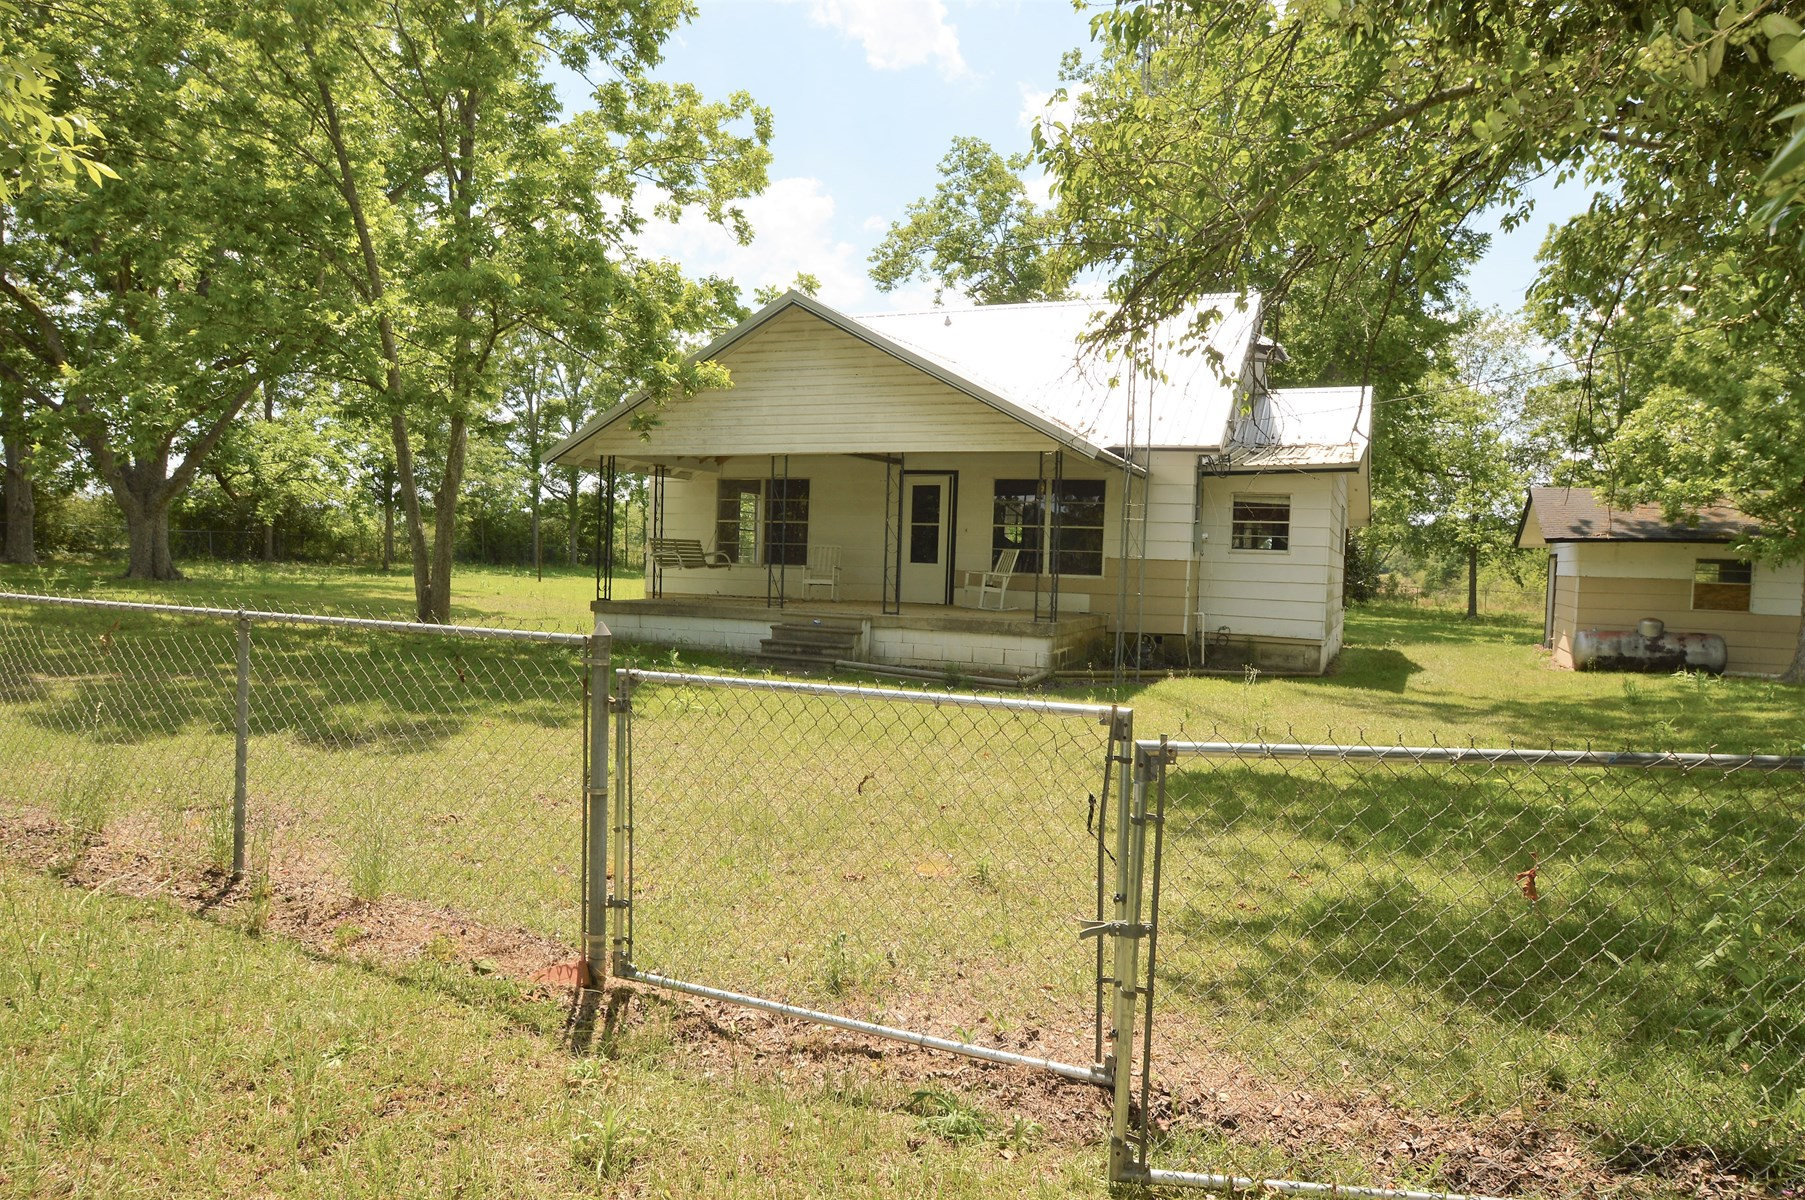 Country Home For Sale  on 1 acre!